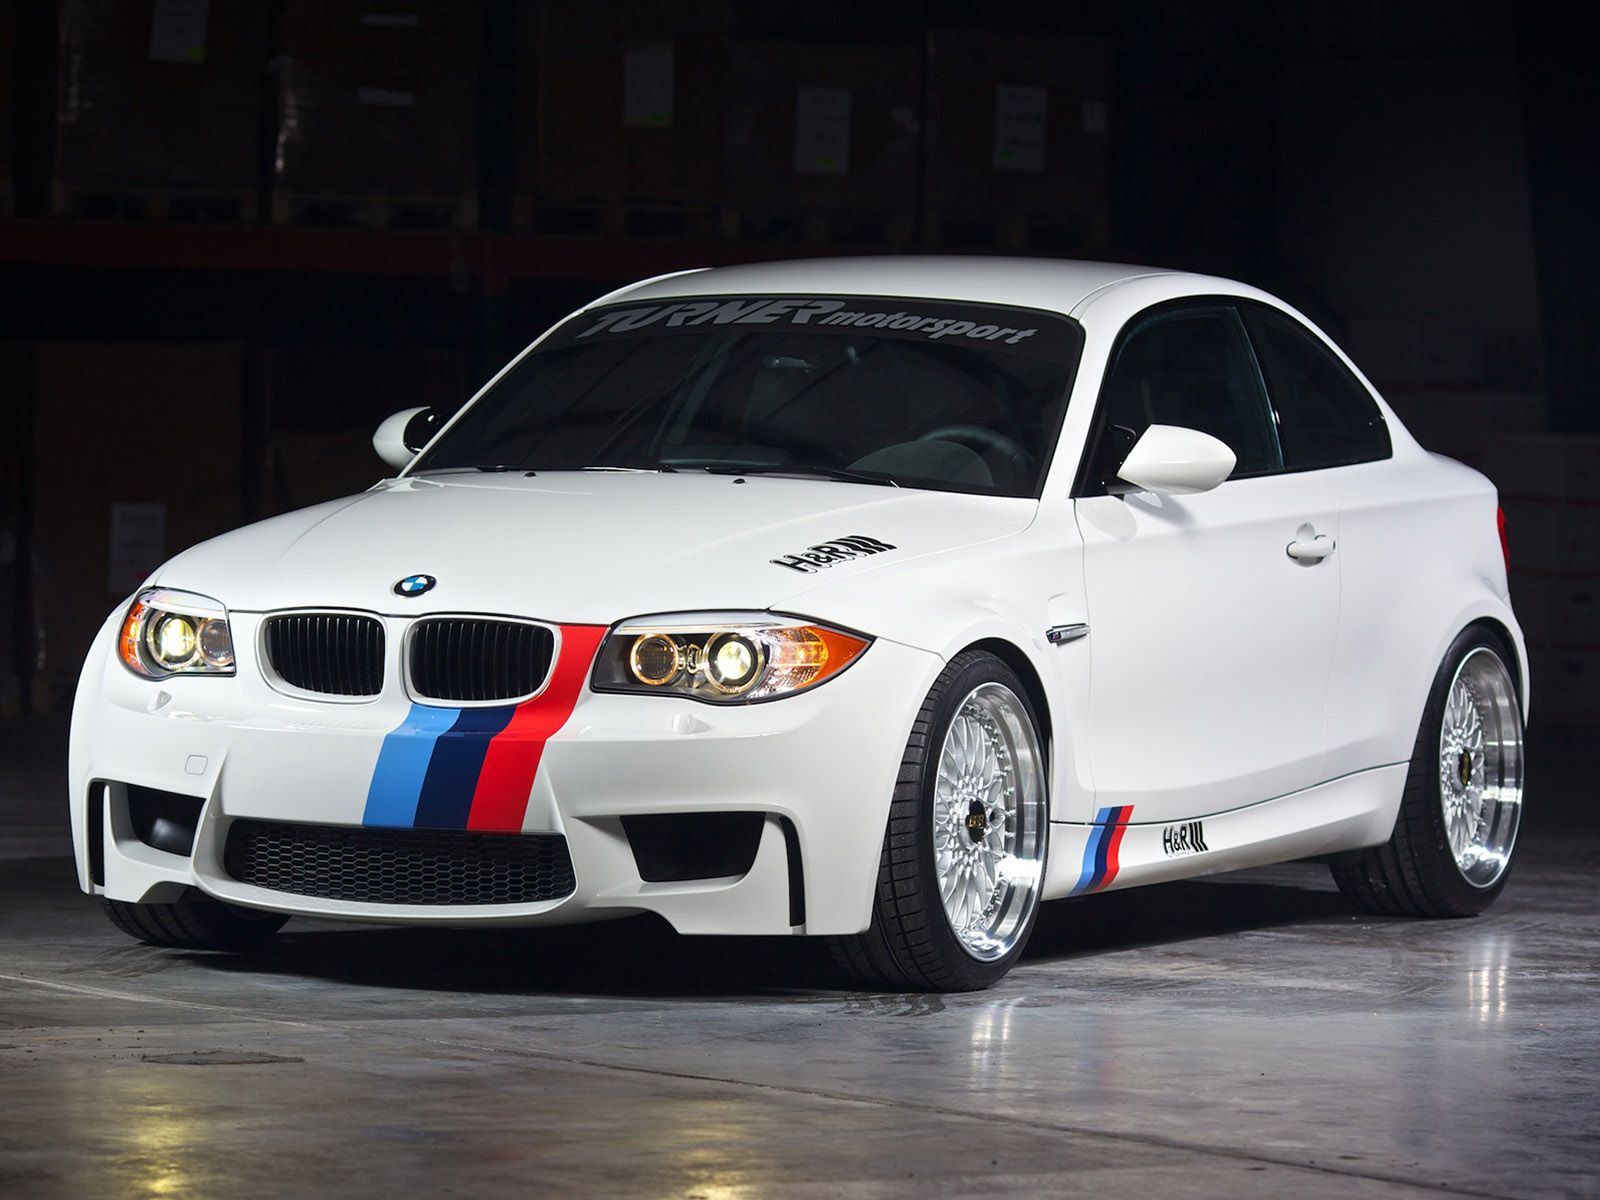 H R Bmw 1 Series M Coupe 2011 Bmw 1 Series Bmw Coupe Cars